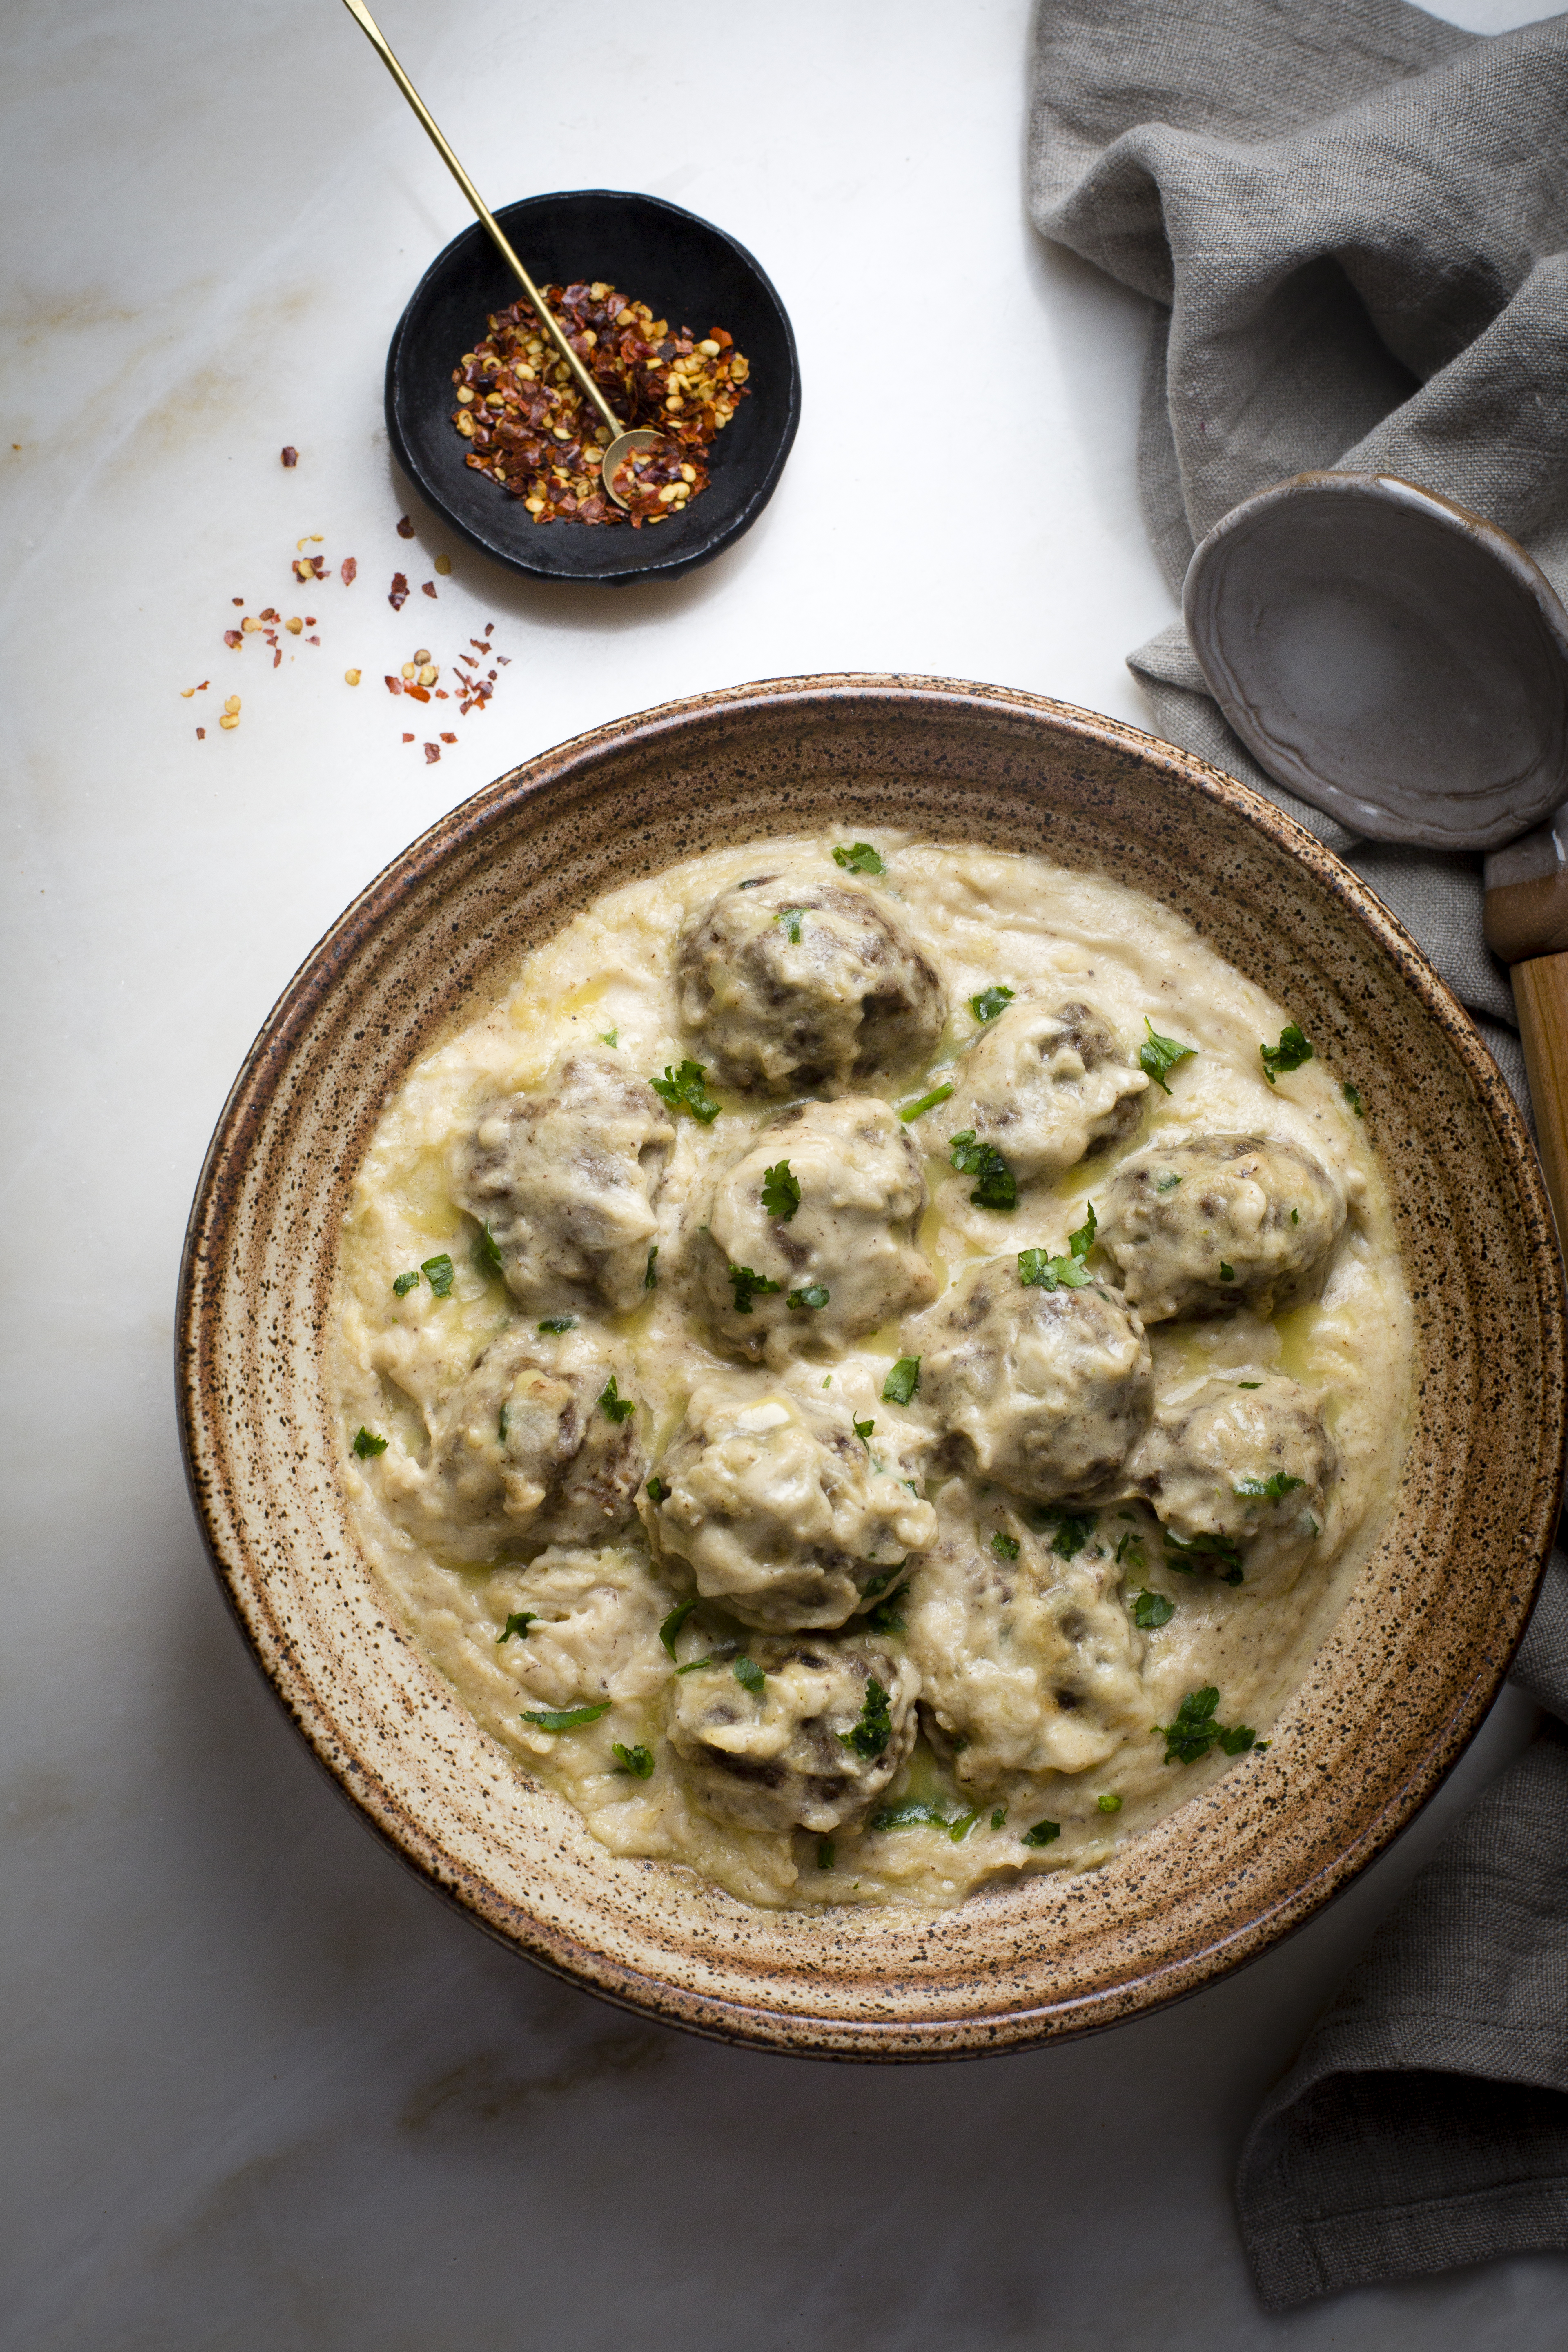 SWEDISH MEATBALLS IN SOUTHERN STYLE COUNTRY GRAVY